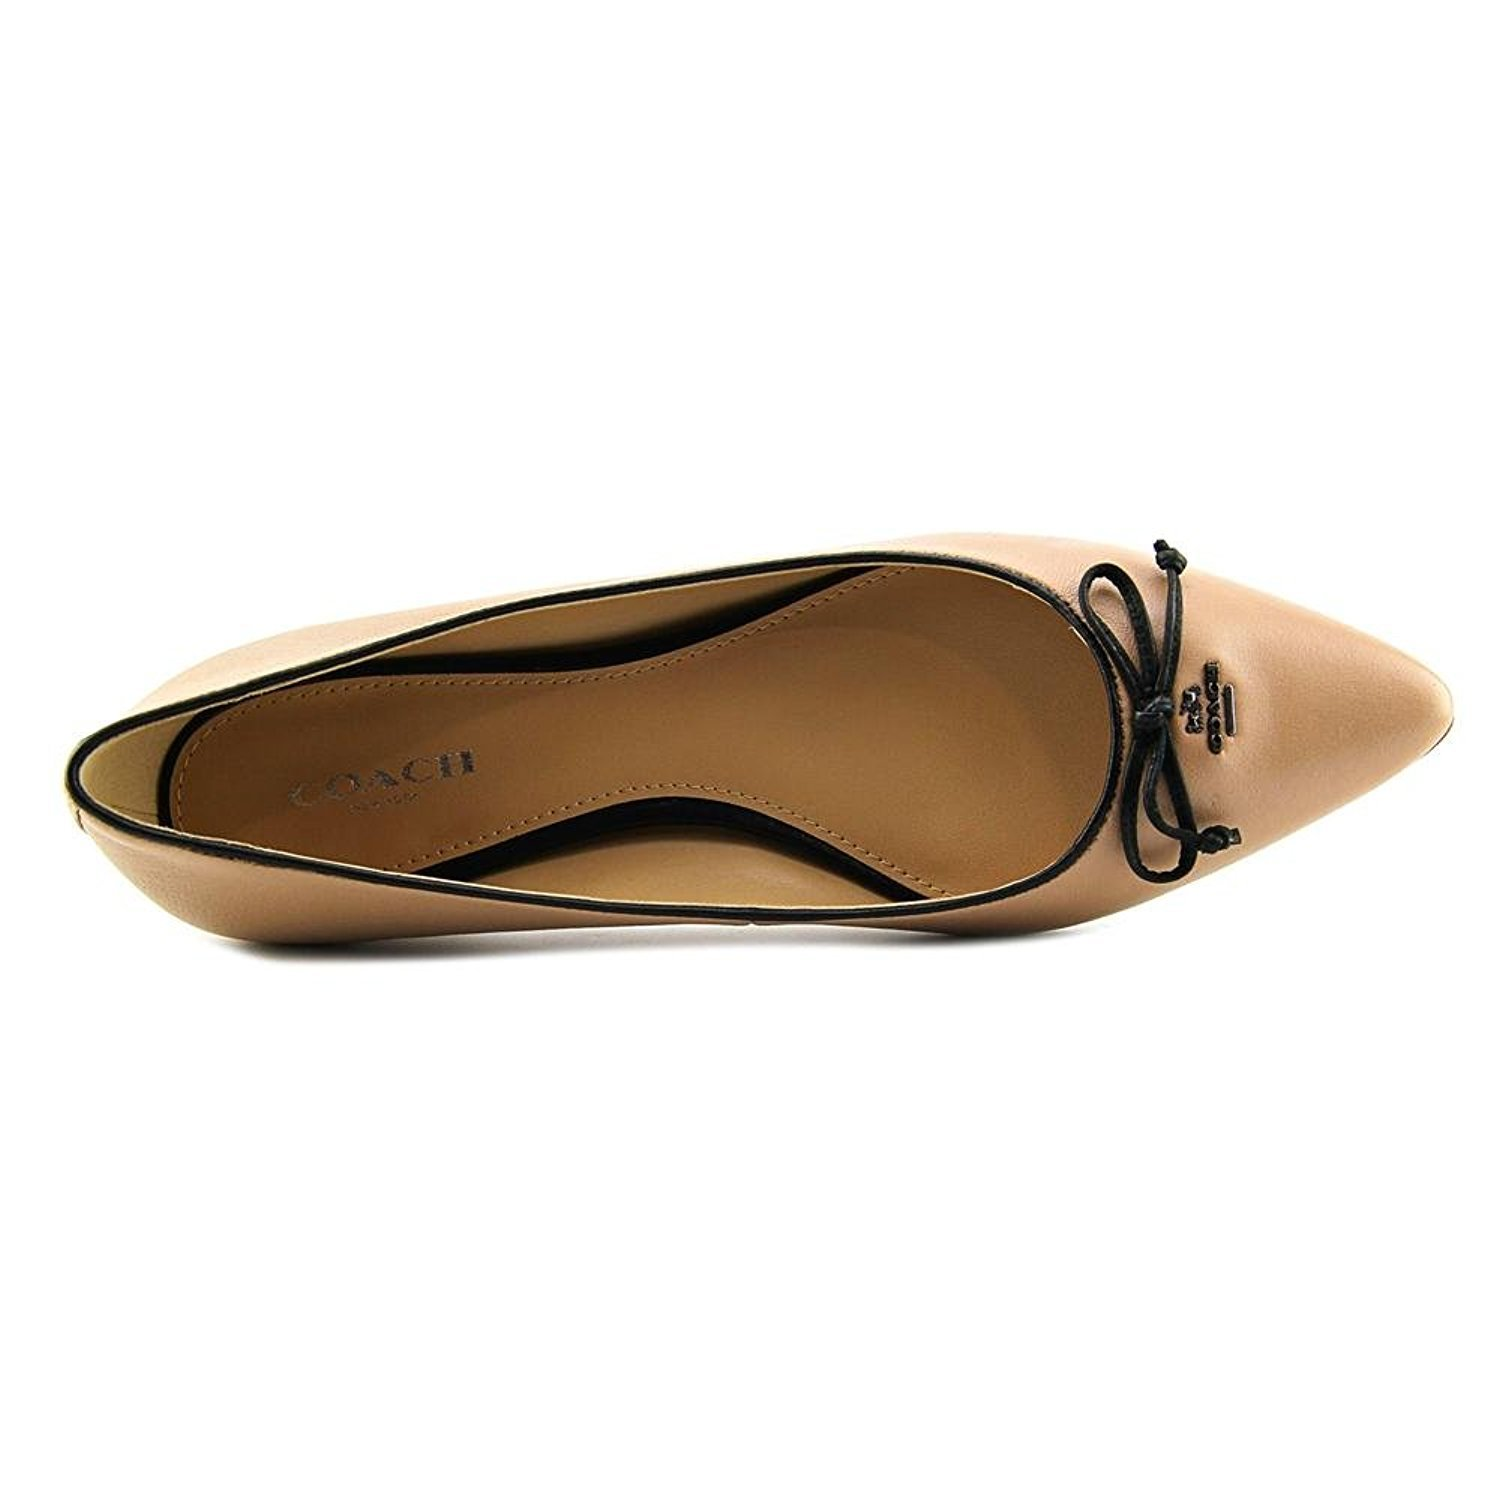 Coach Mocasines Para Mujer Marrón Beechwood/Black: Amazon.es: Zapatos y complementos